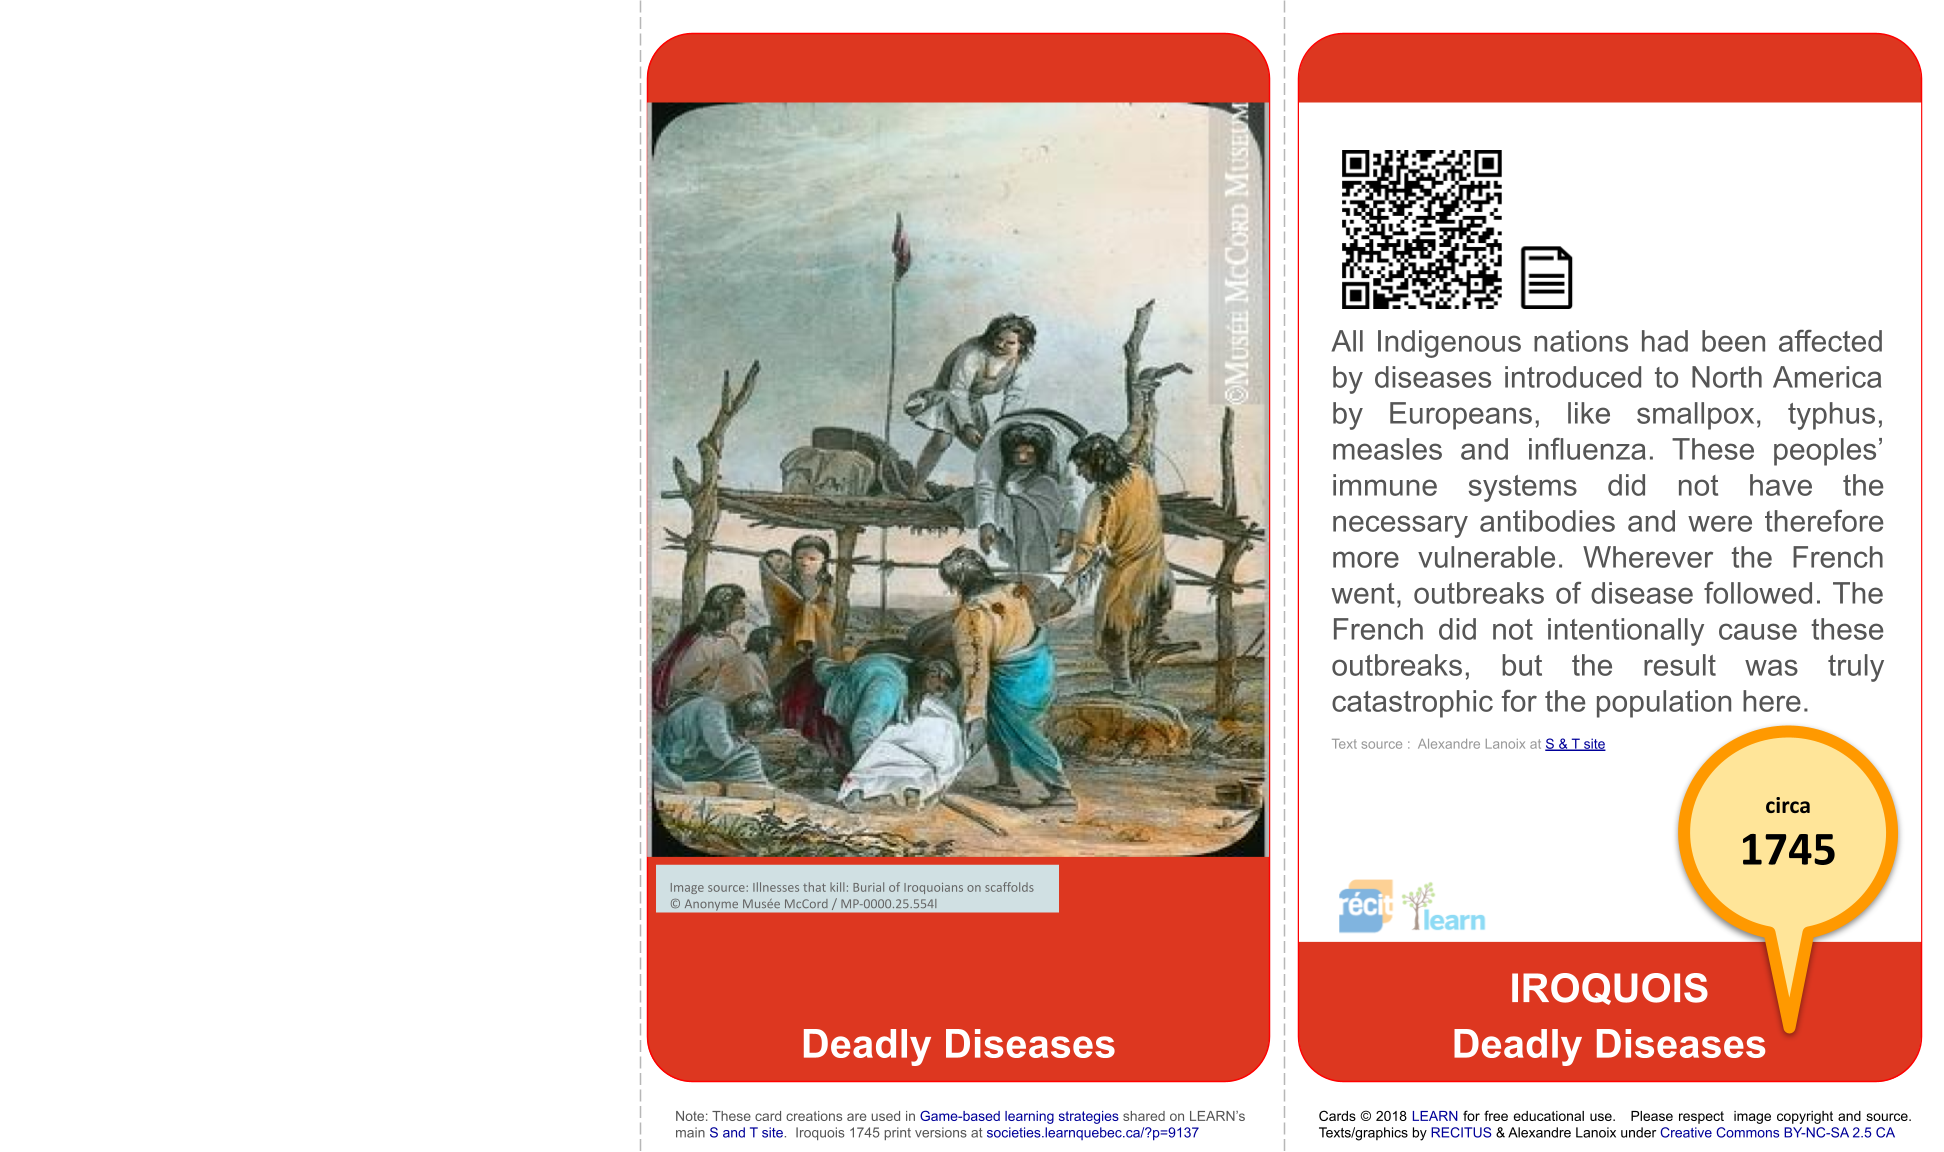 Iroquois 1745: Deadly diseases